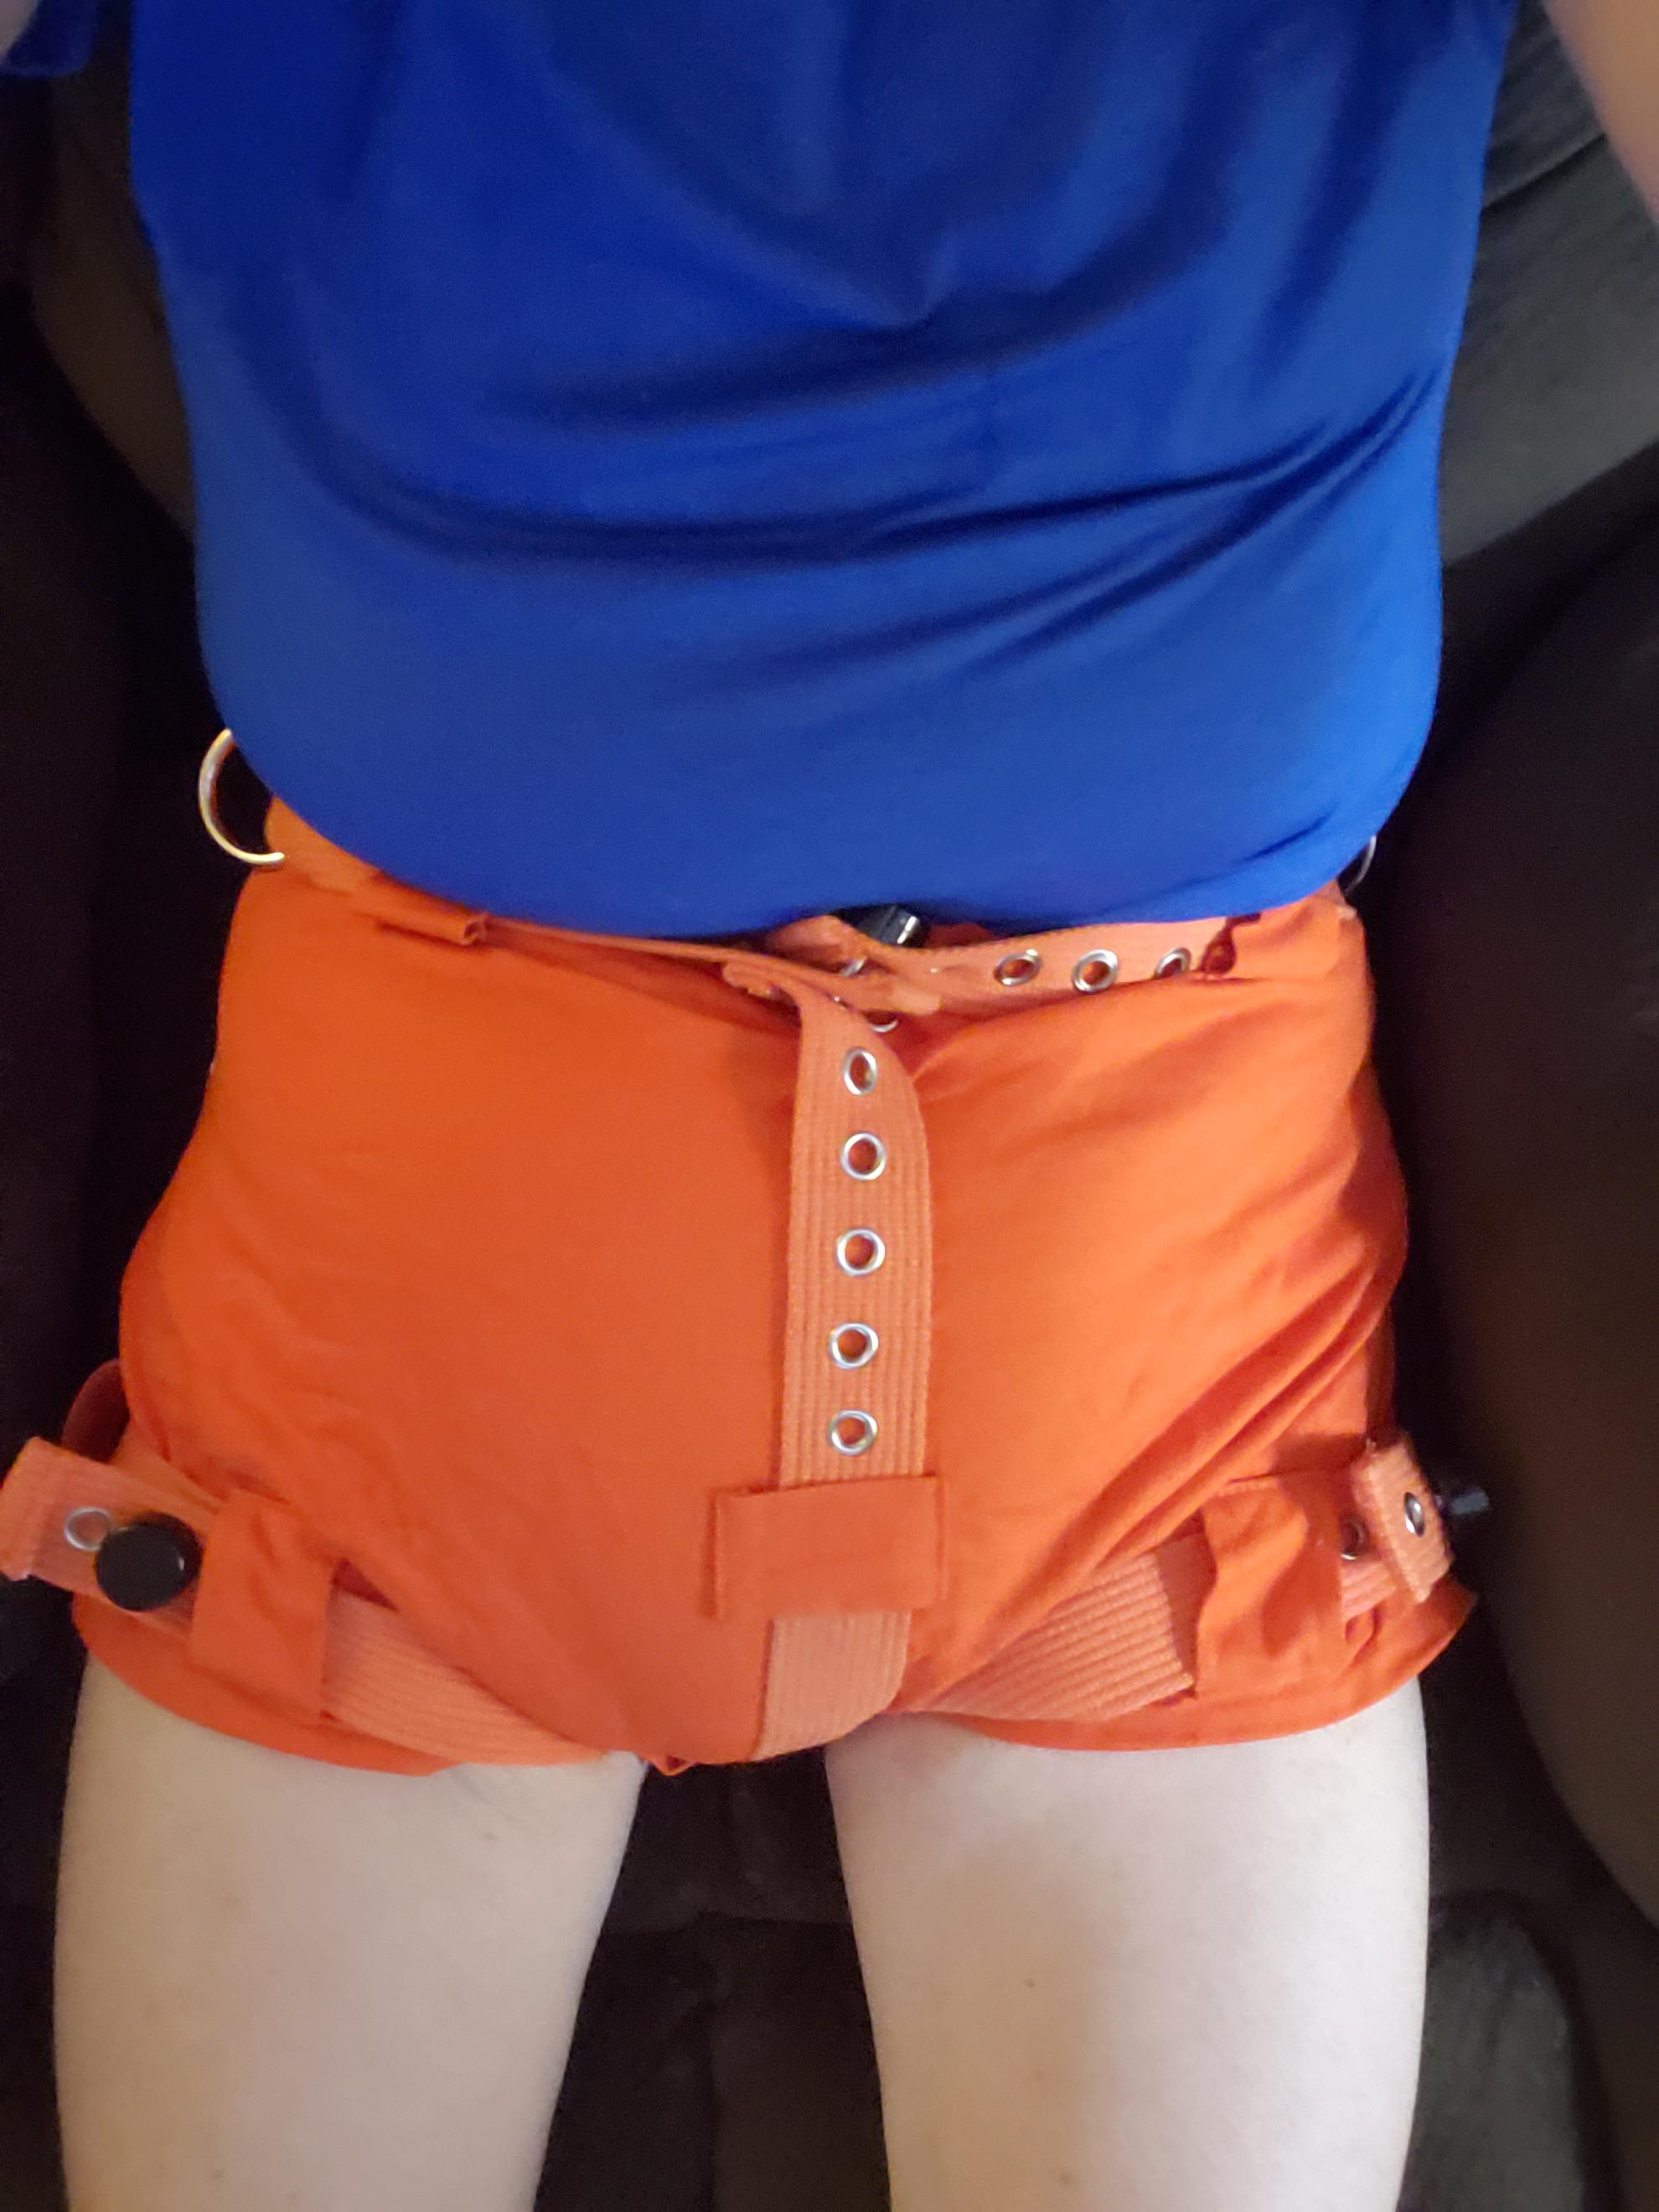 Abdl Chastity : chastity, Day...locked, Chastity, Cage,, Thick, Diapers,, Onesie,, Locking, Diaper, Cover